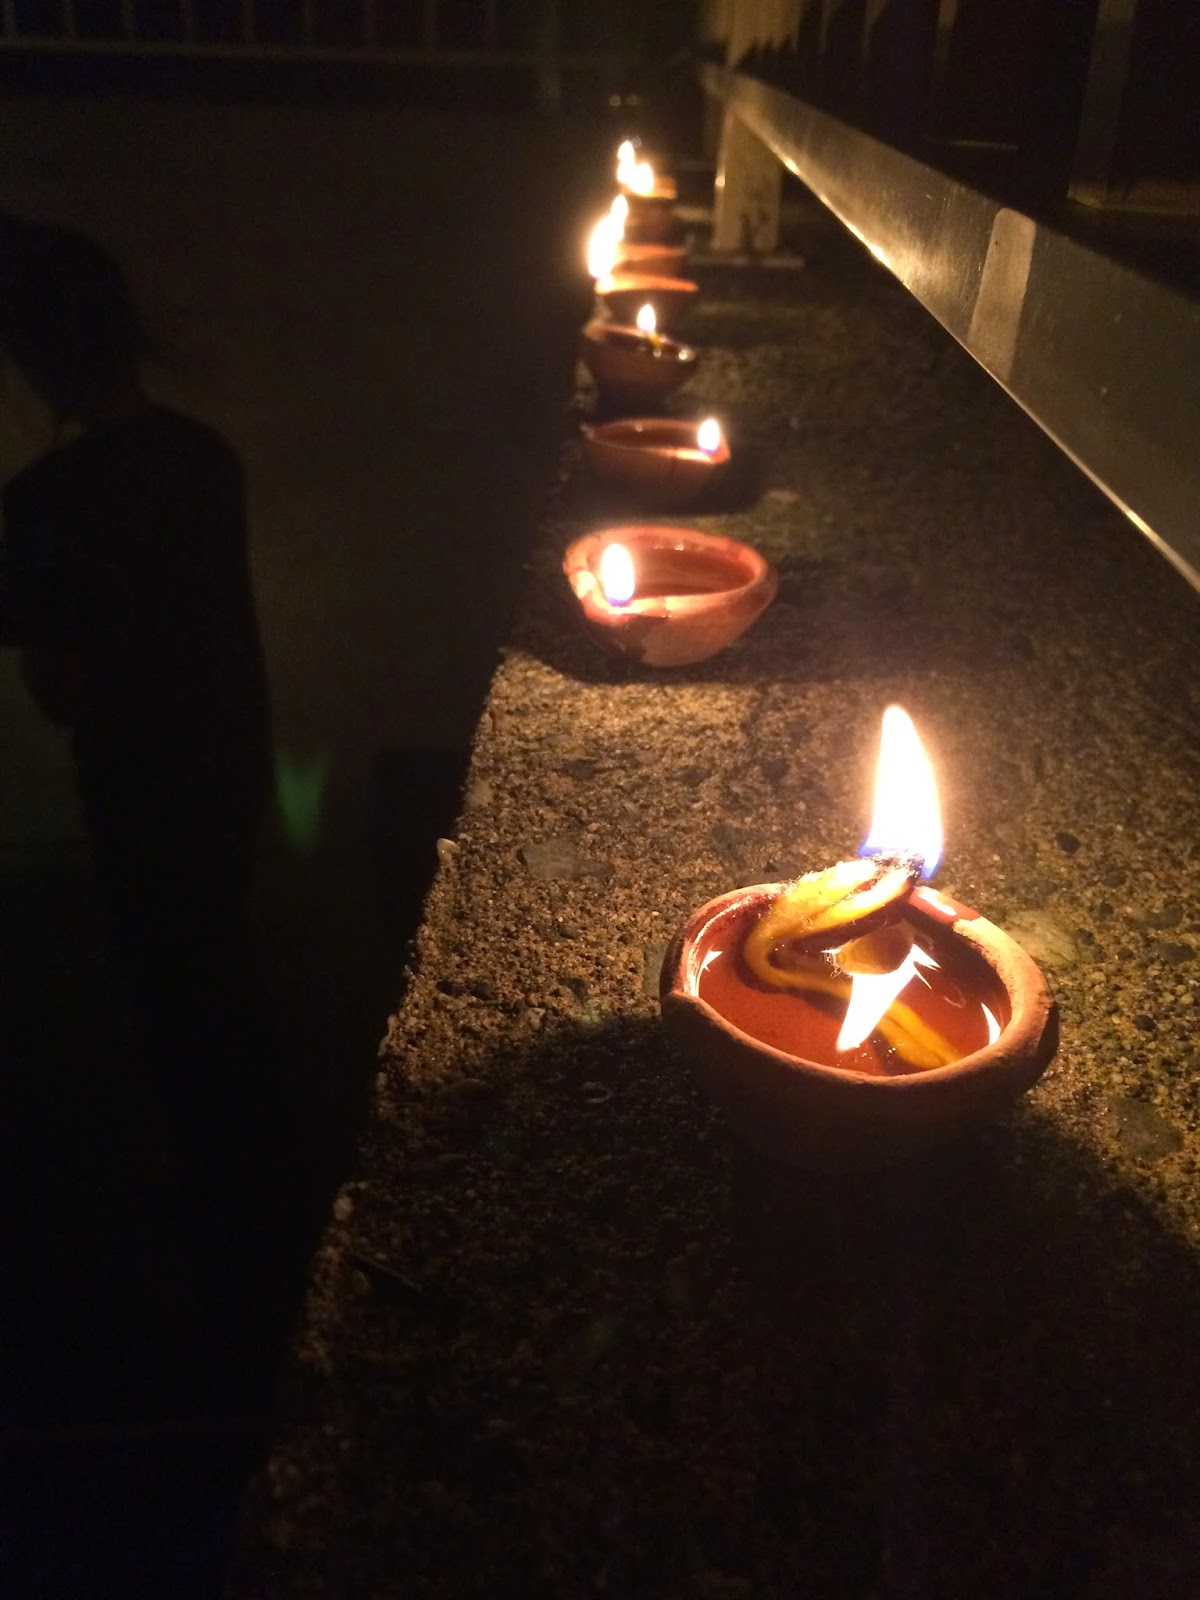 diwali 2014 http://www.footnotesandfinds.com